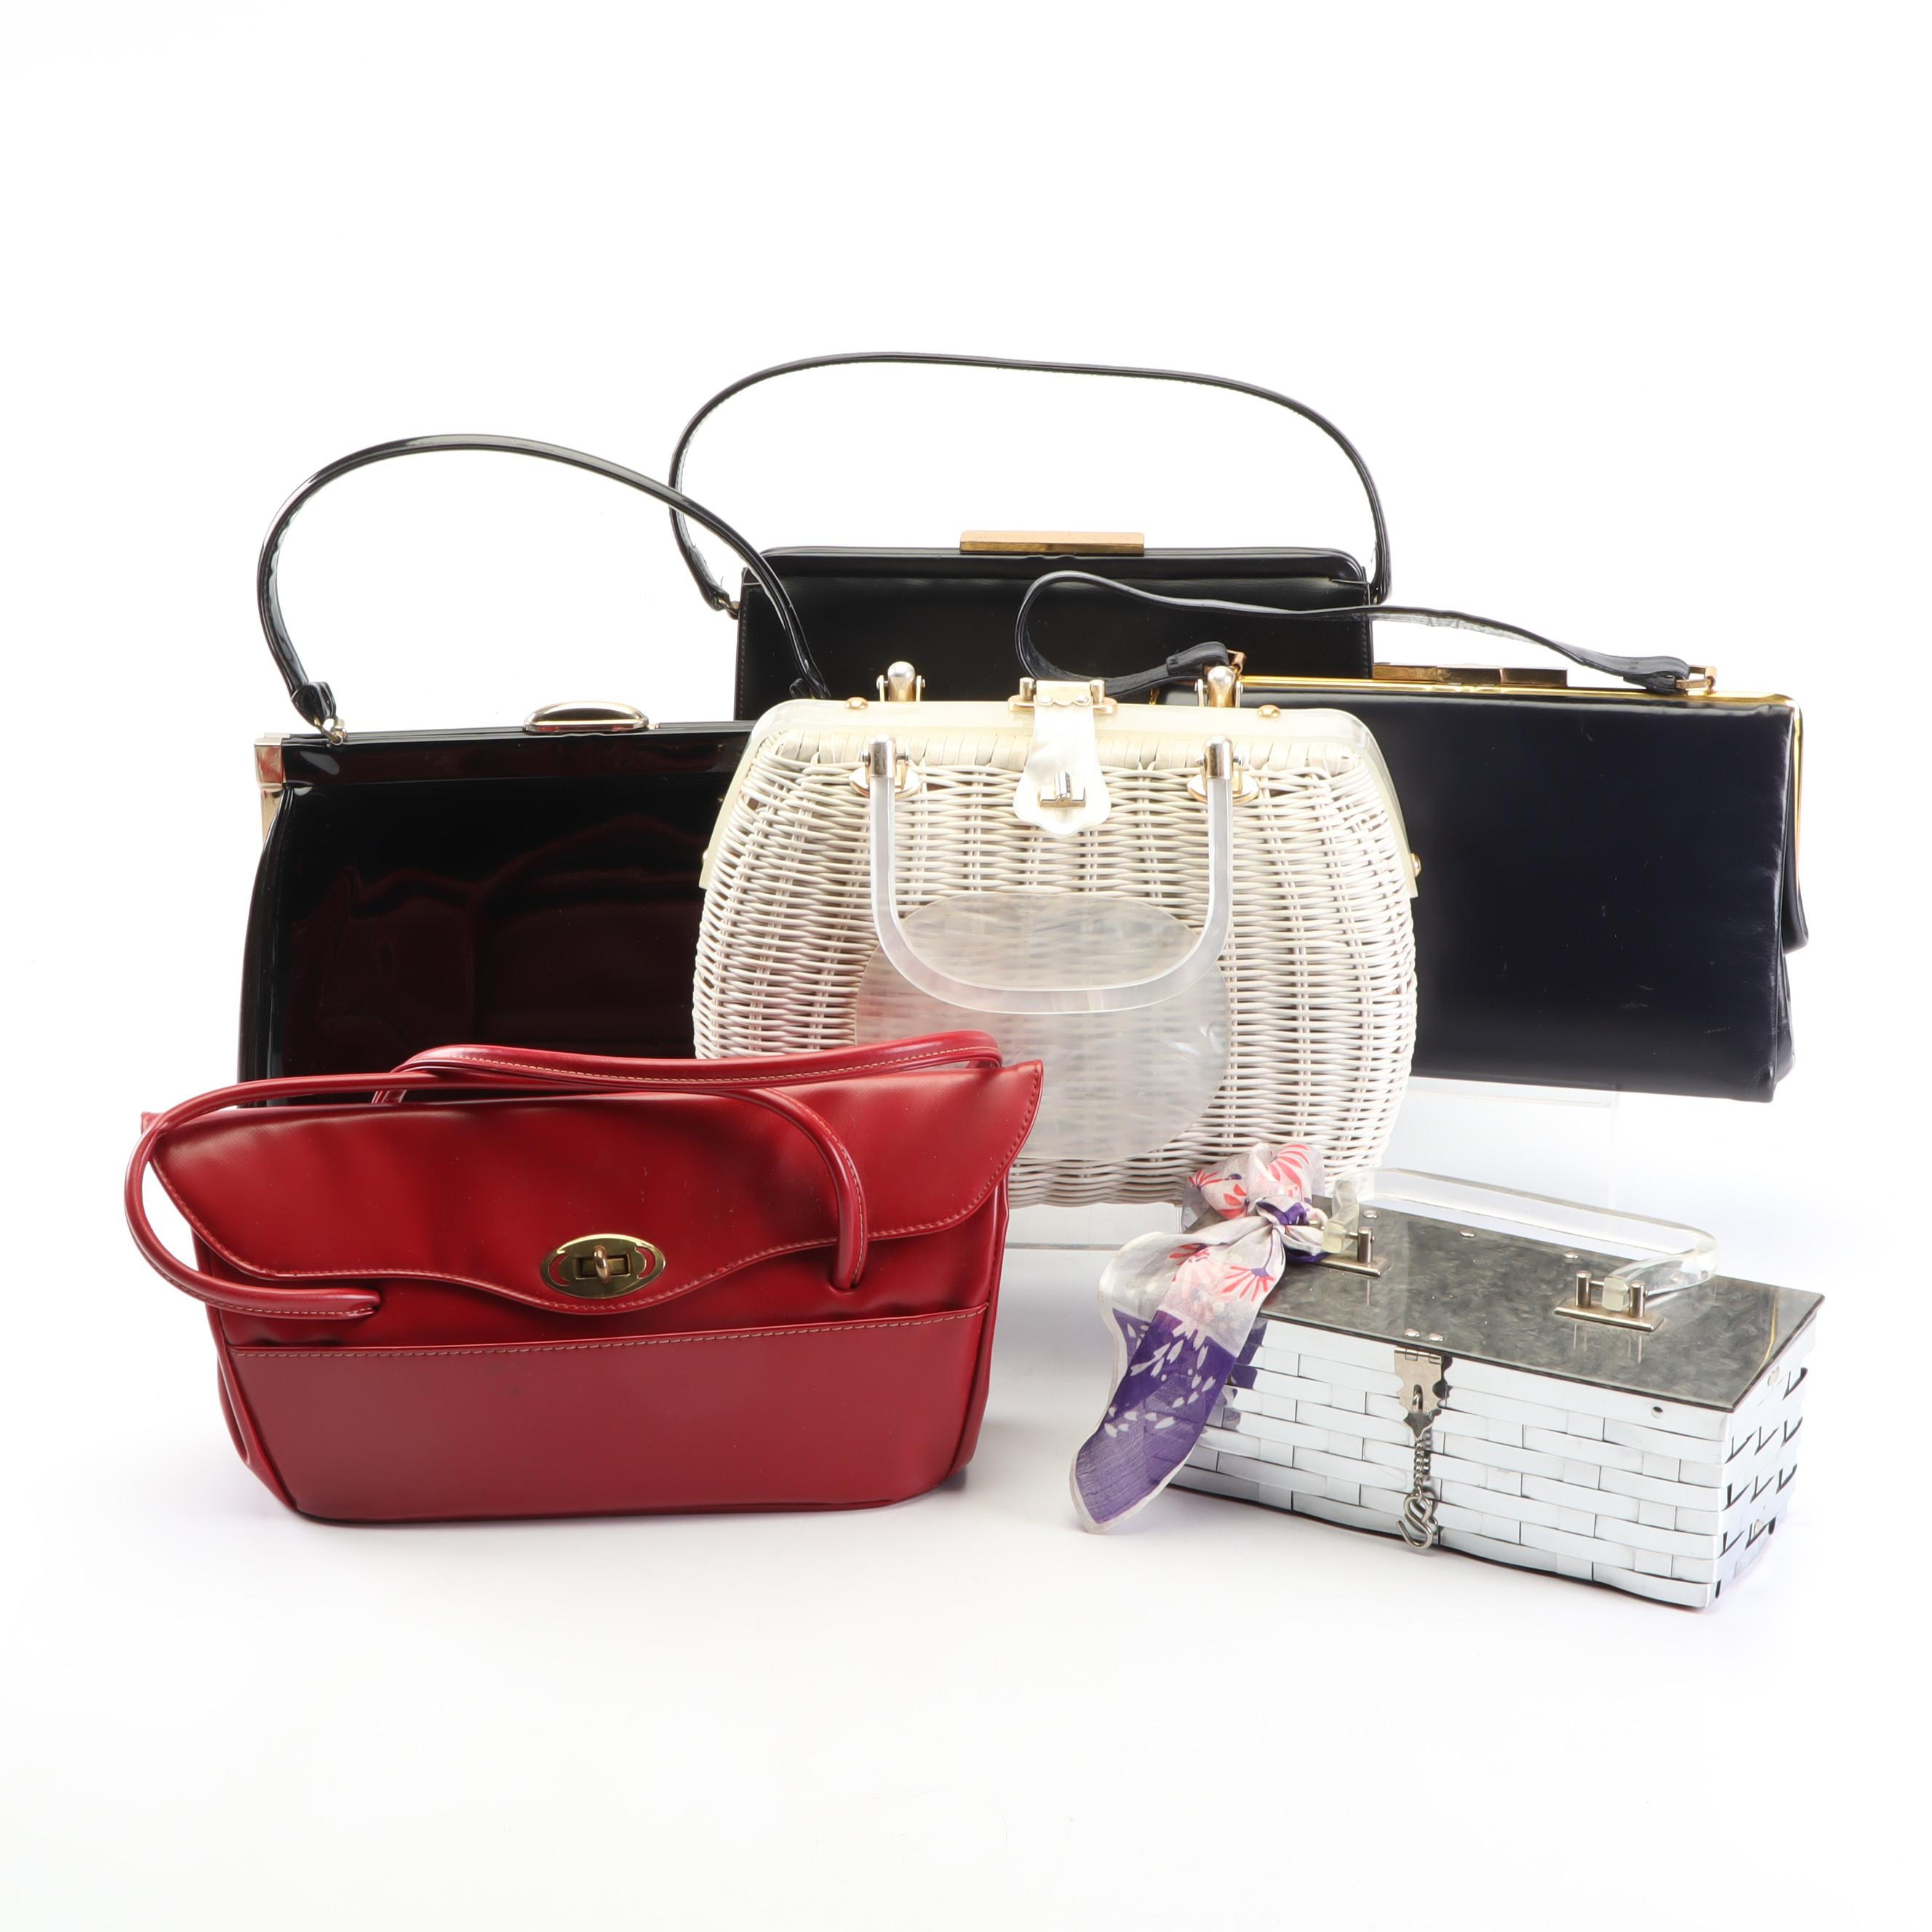 Dorset Rex, A-Frame, Patent Leather, and Wicker Handbags, Vintage